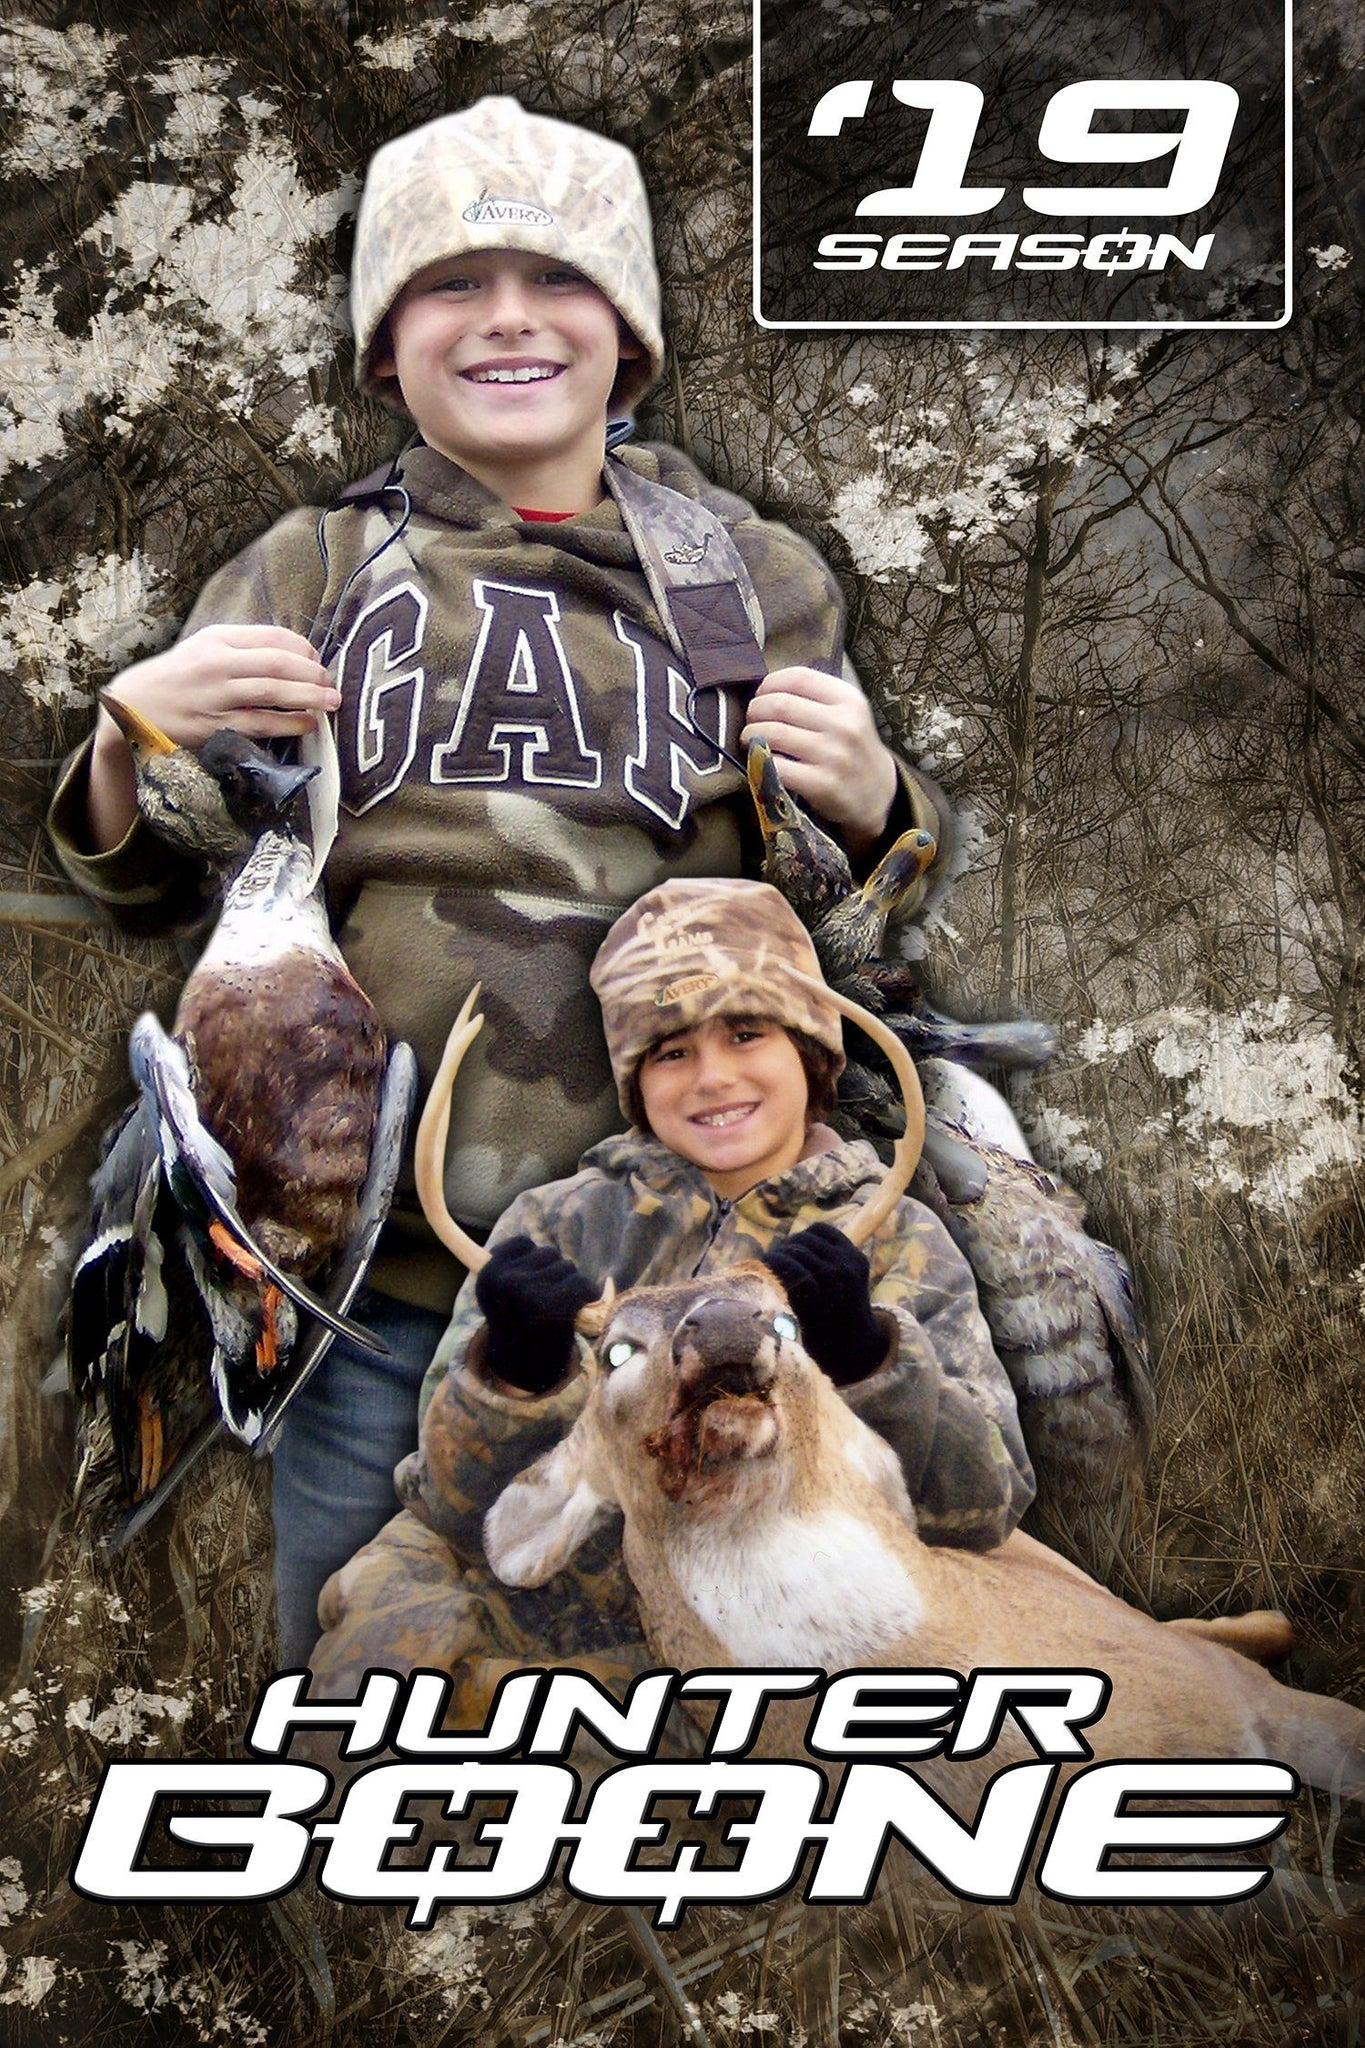 Hunting v.2 - Action Extraction Poster/Banner-Photoshop Template - Photo Solutions